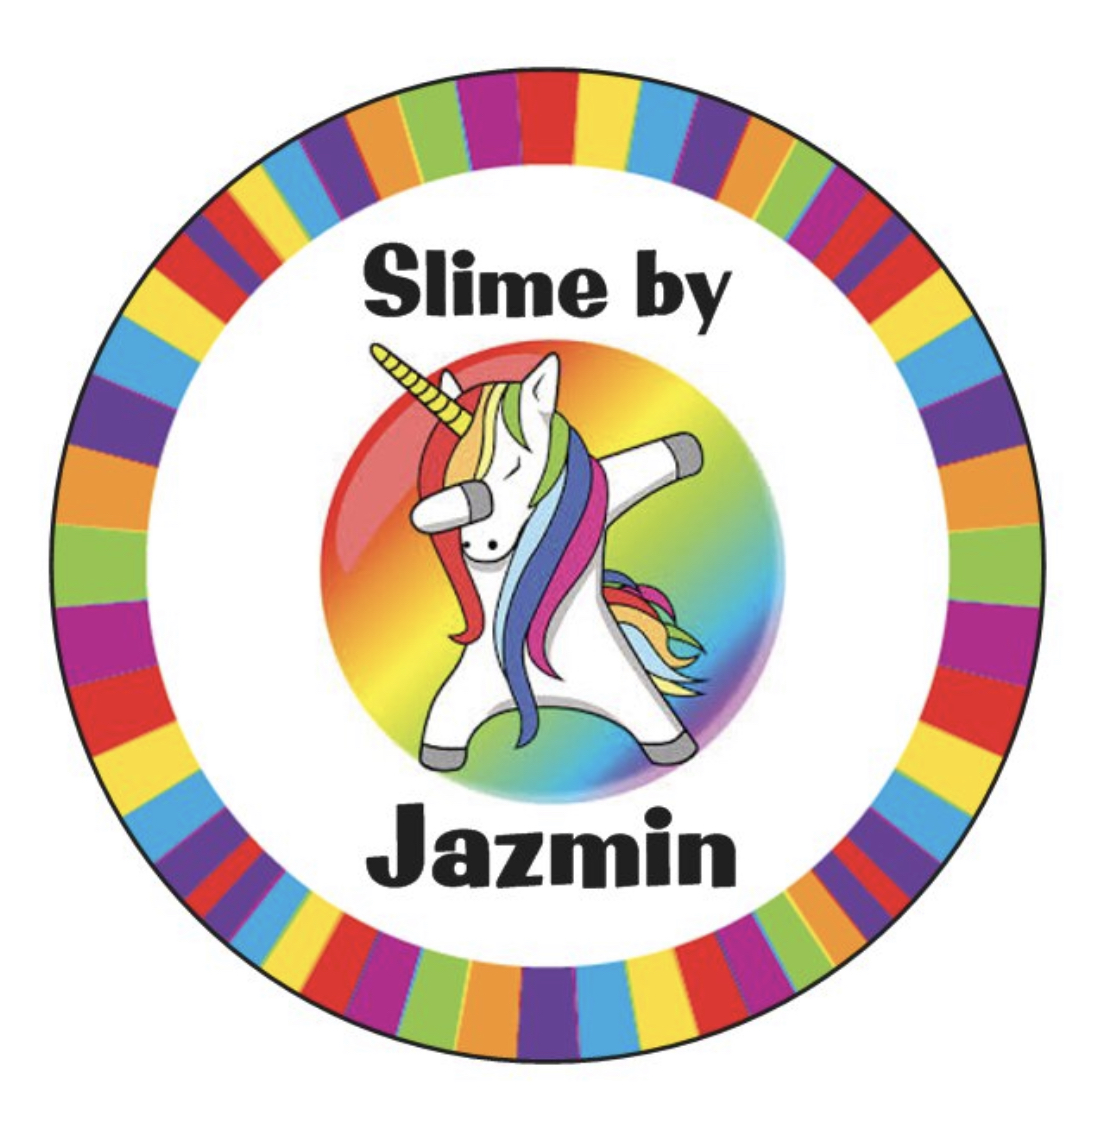 slime-by-jazmin.jpeg